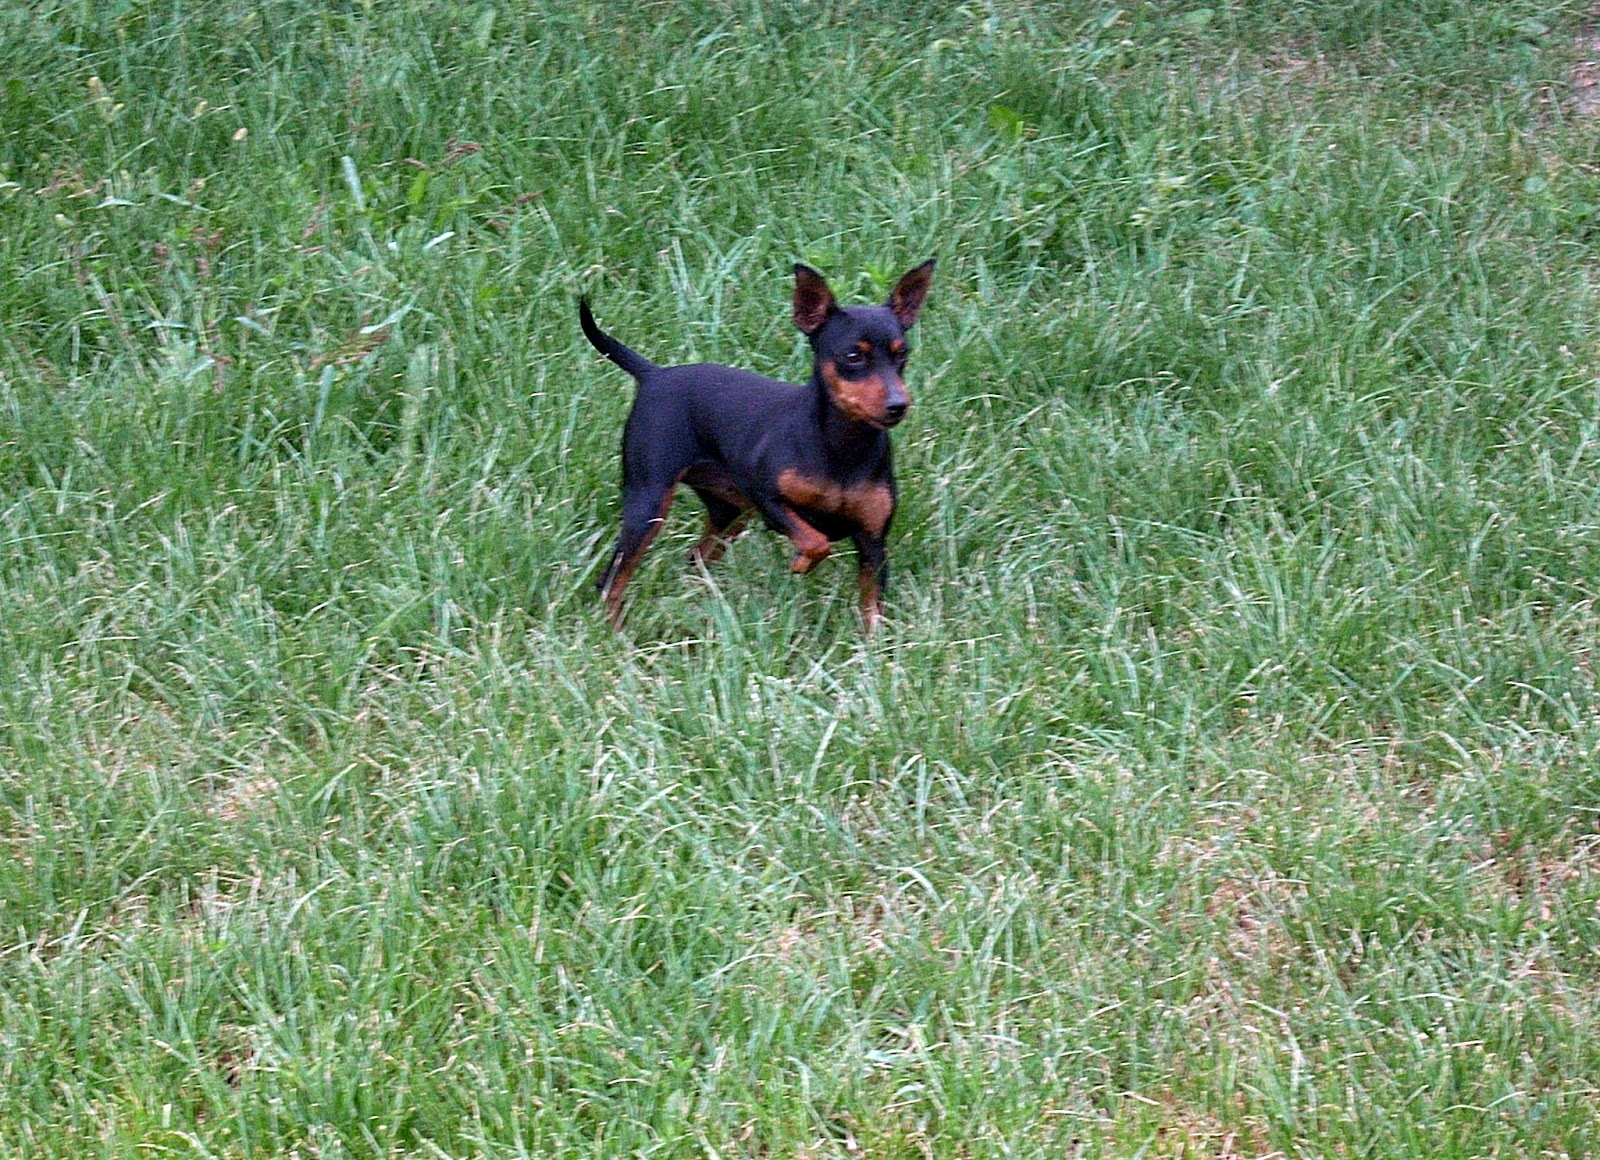 Miniature Pinscher On The Grass Wallpaper 16002151160 1600x1160